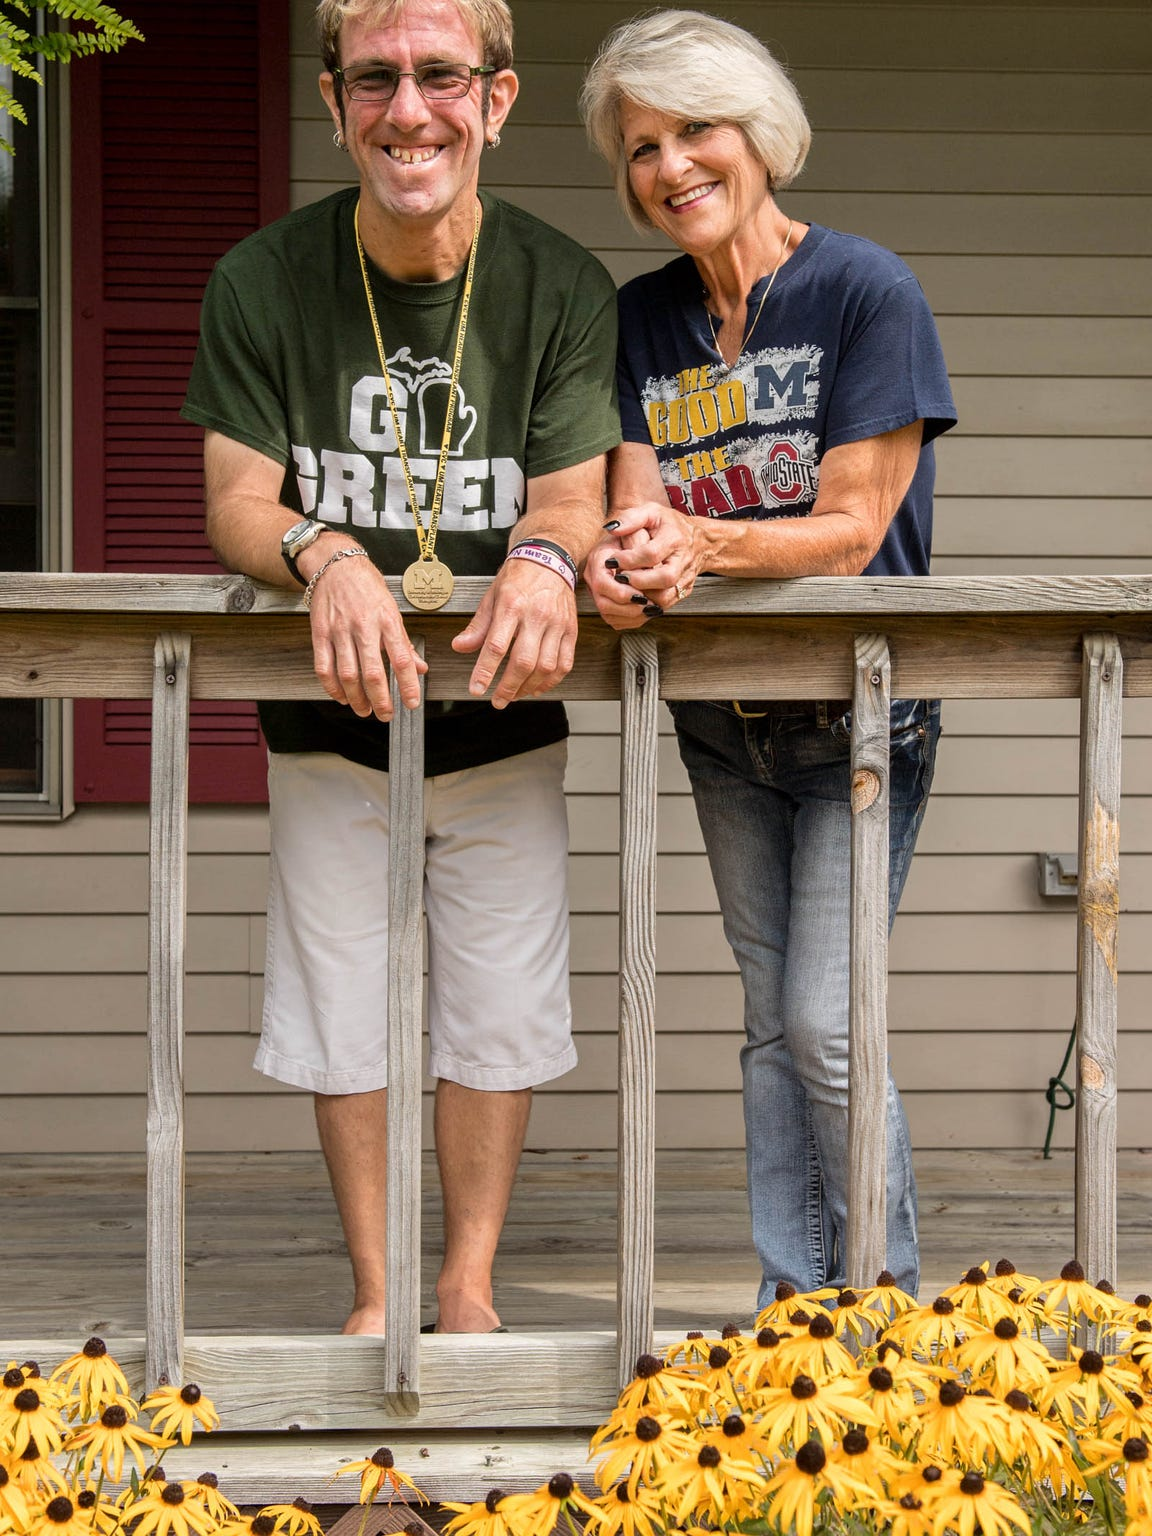 Brian Stricklin, 31, the longest surviving heart transplant recipient from Michigan Medicine, the academic medical center at the University of Michigan, stands with his mom, Jackie Stricklin.